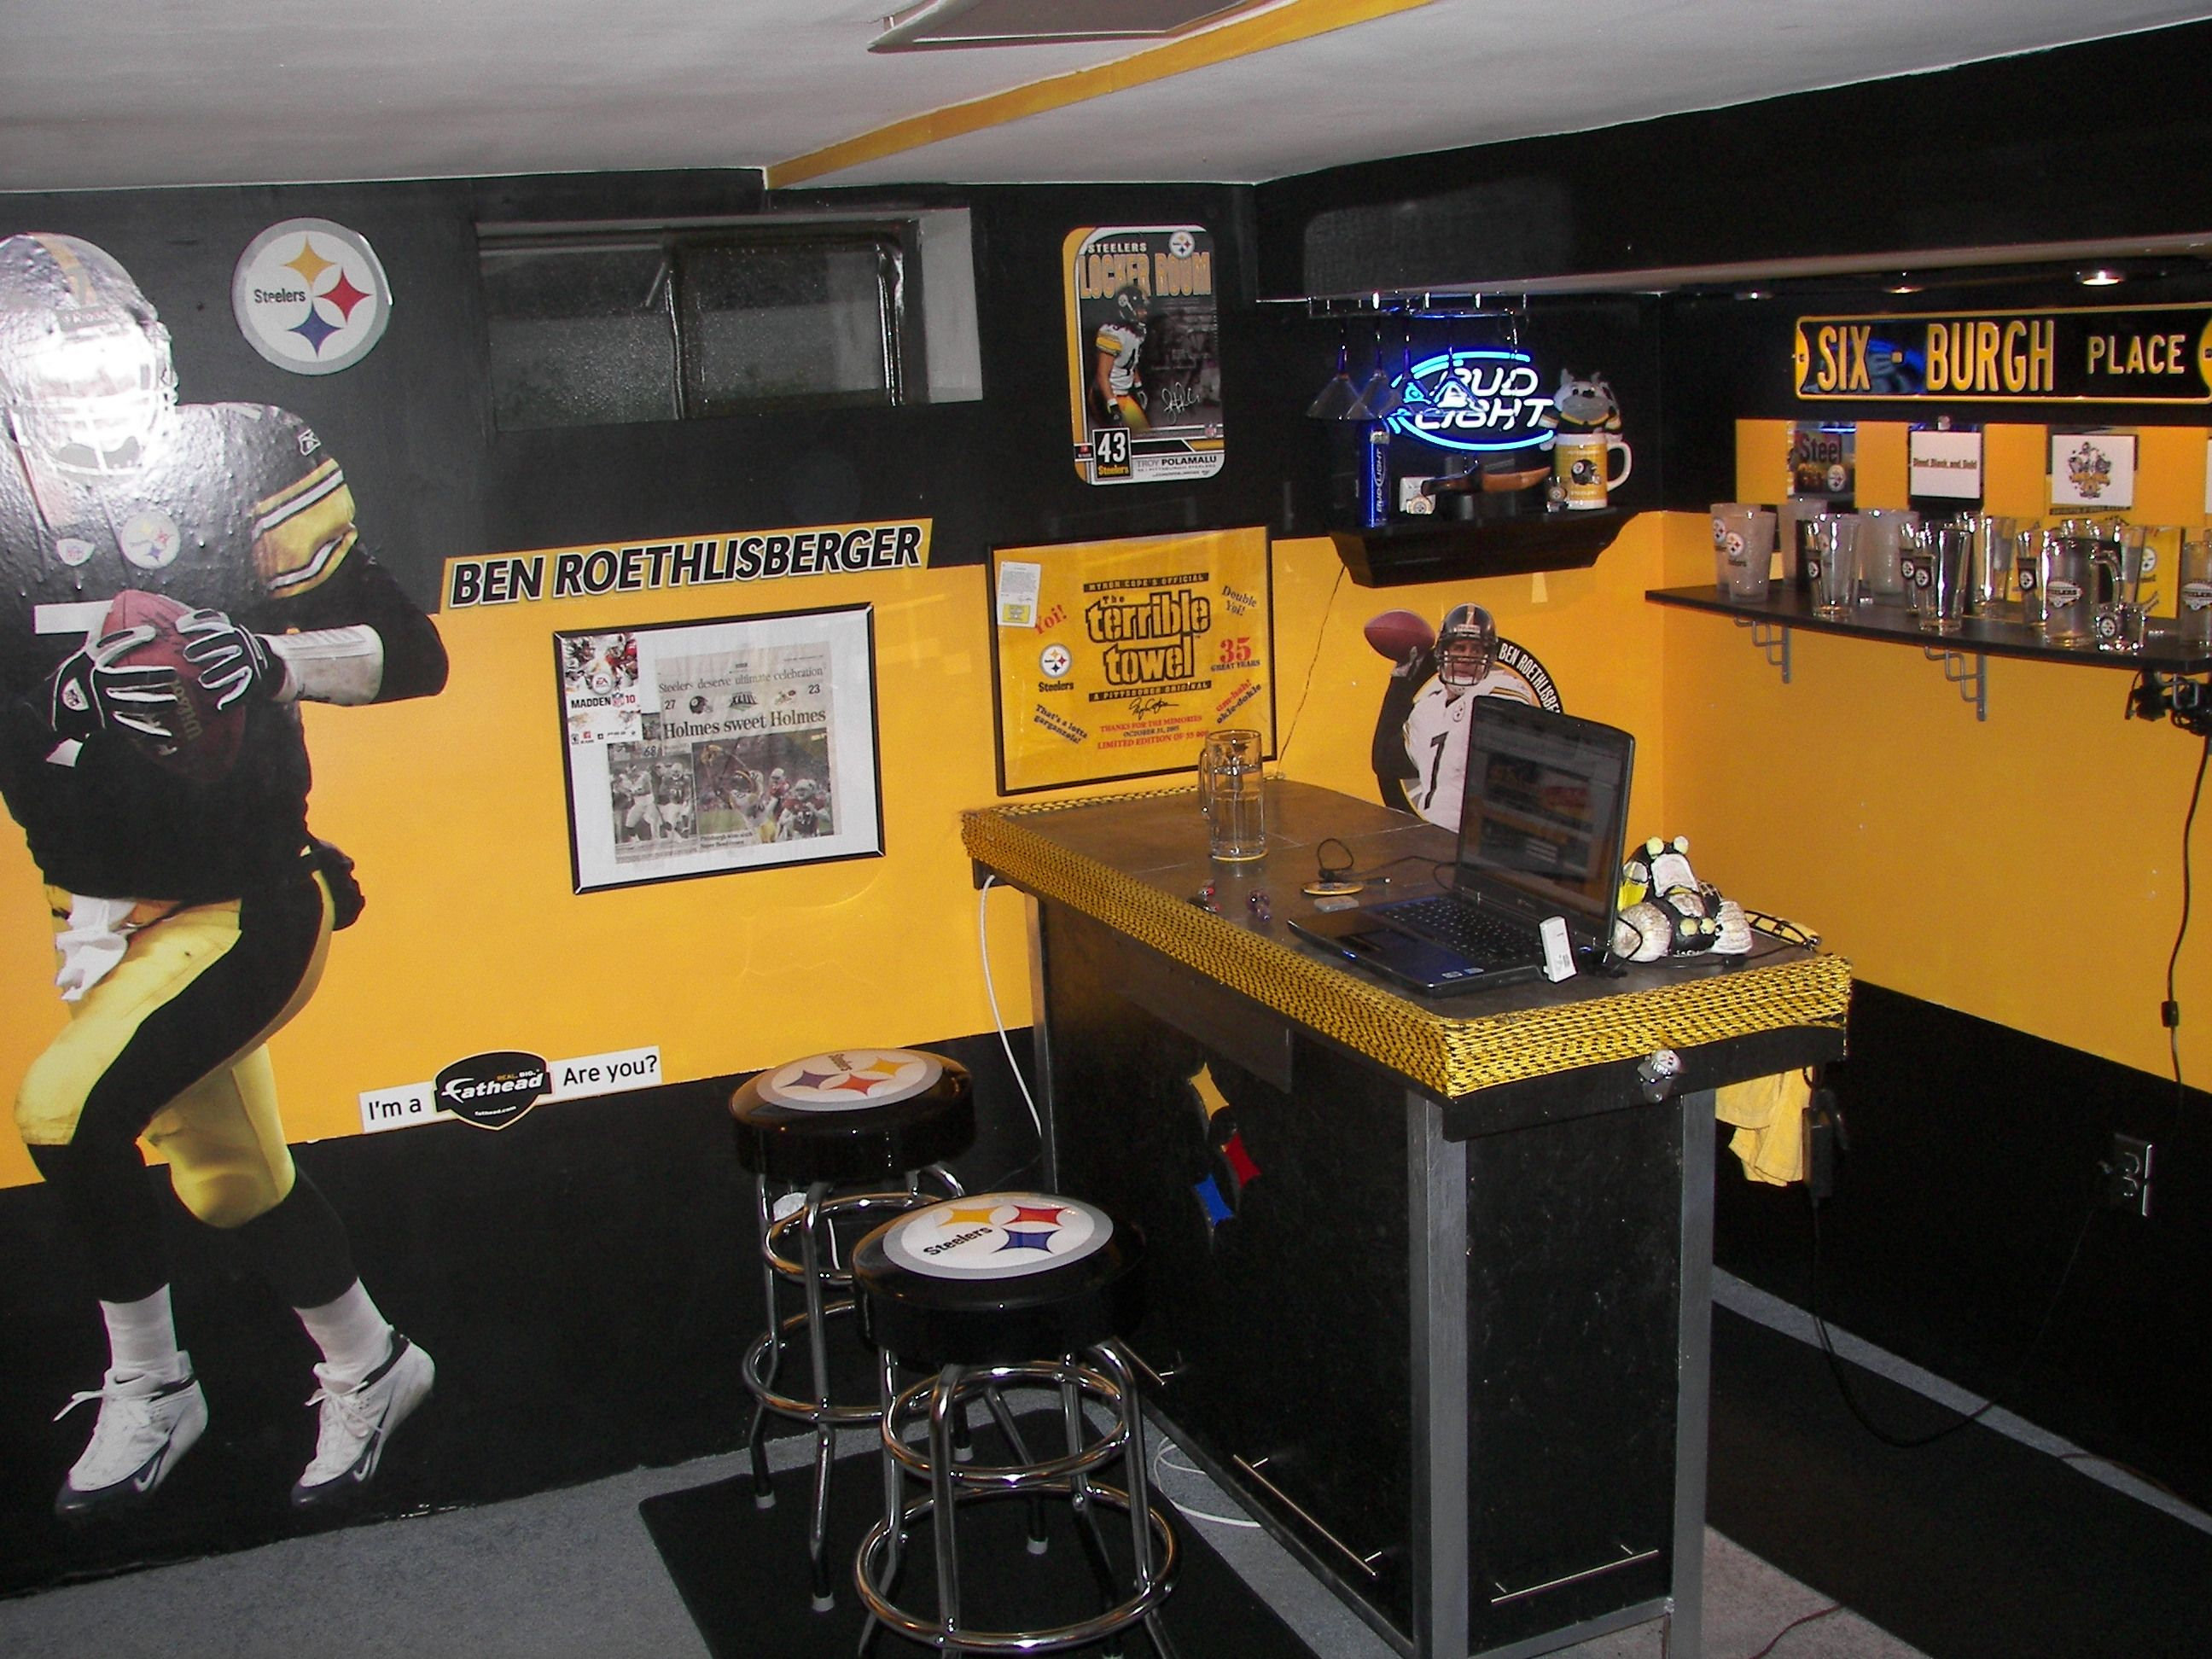 a68c90733 man cave ideas, tho instead of stealers - Raiders! | Man cave ideas ...